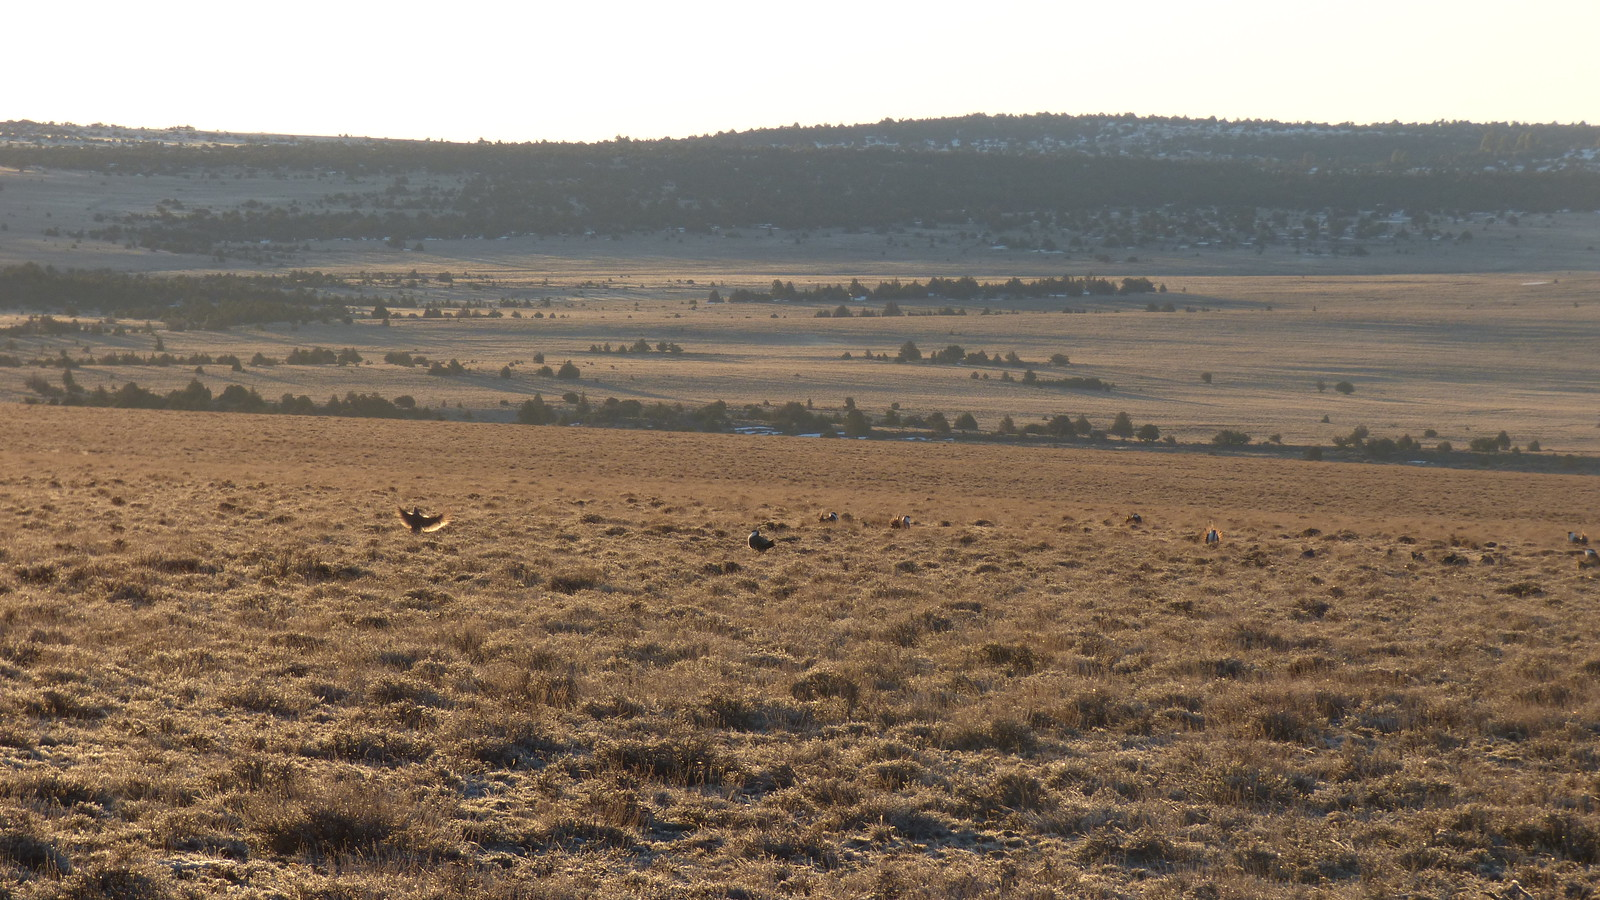 greater sage grouse in southern Oregon